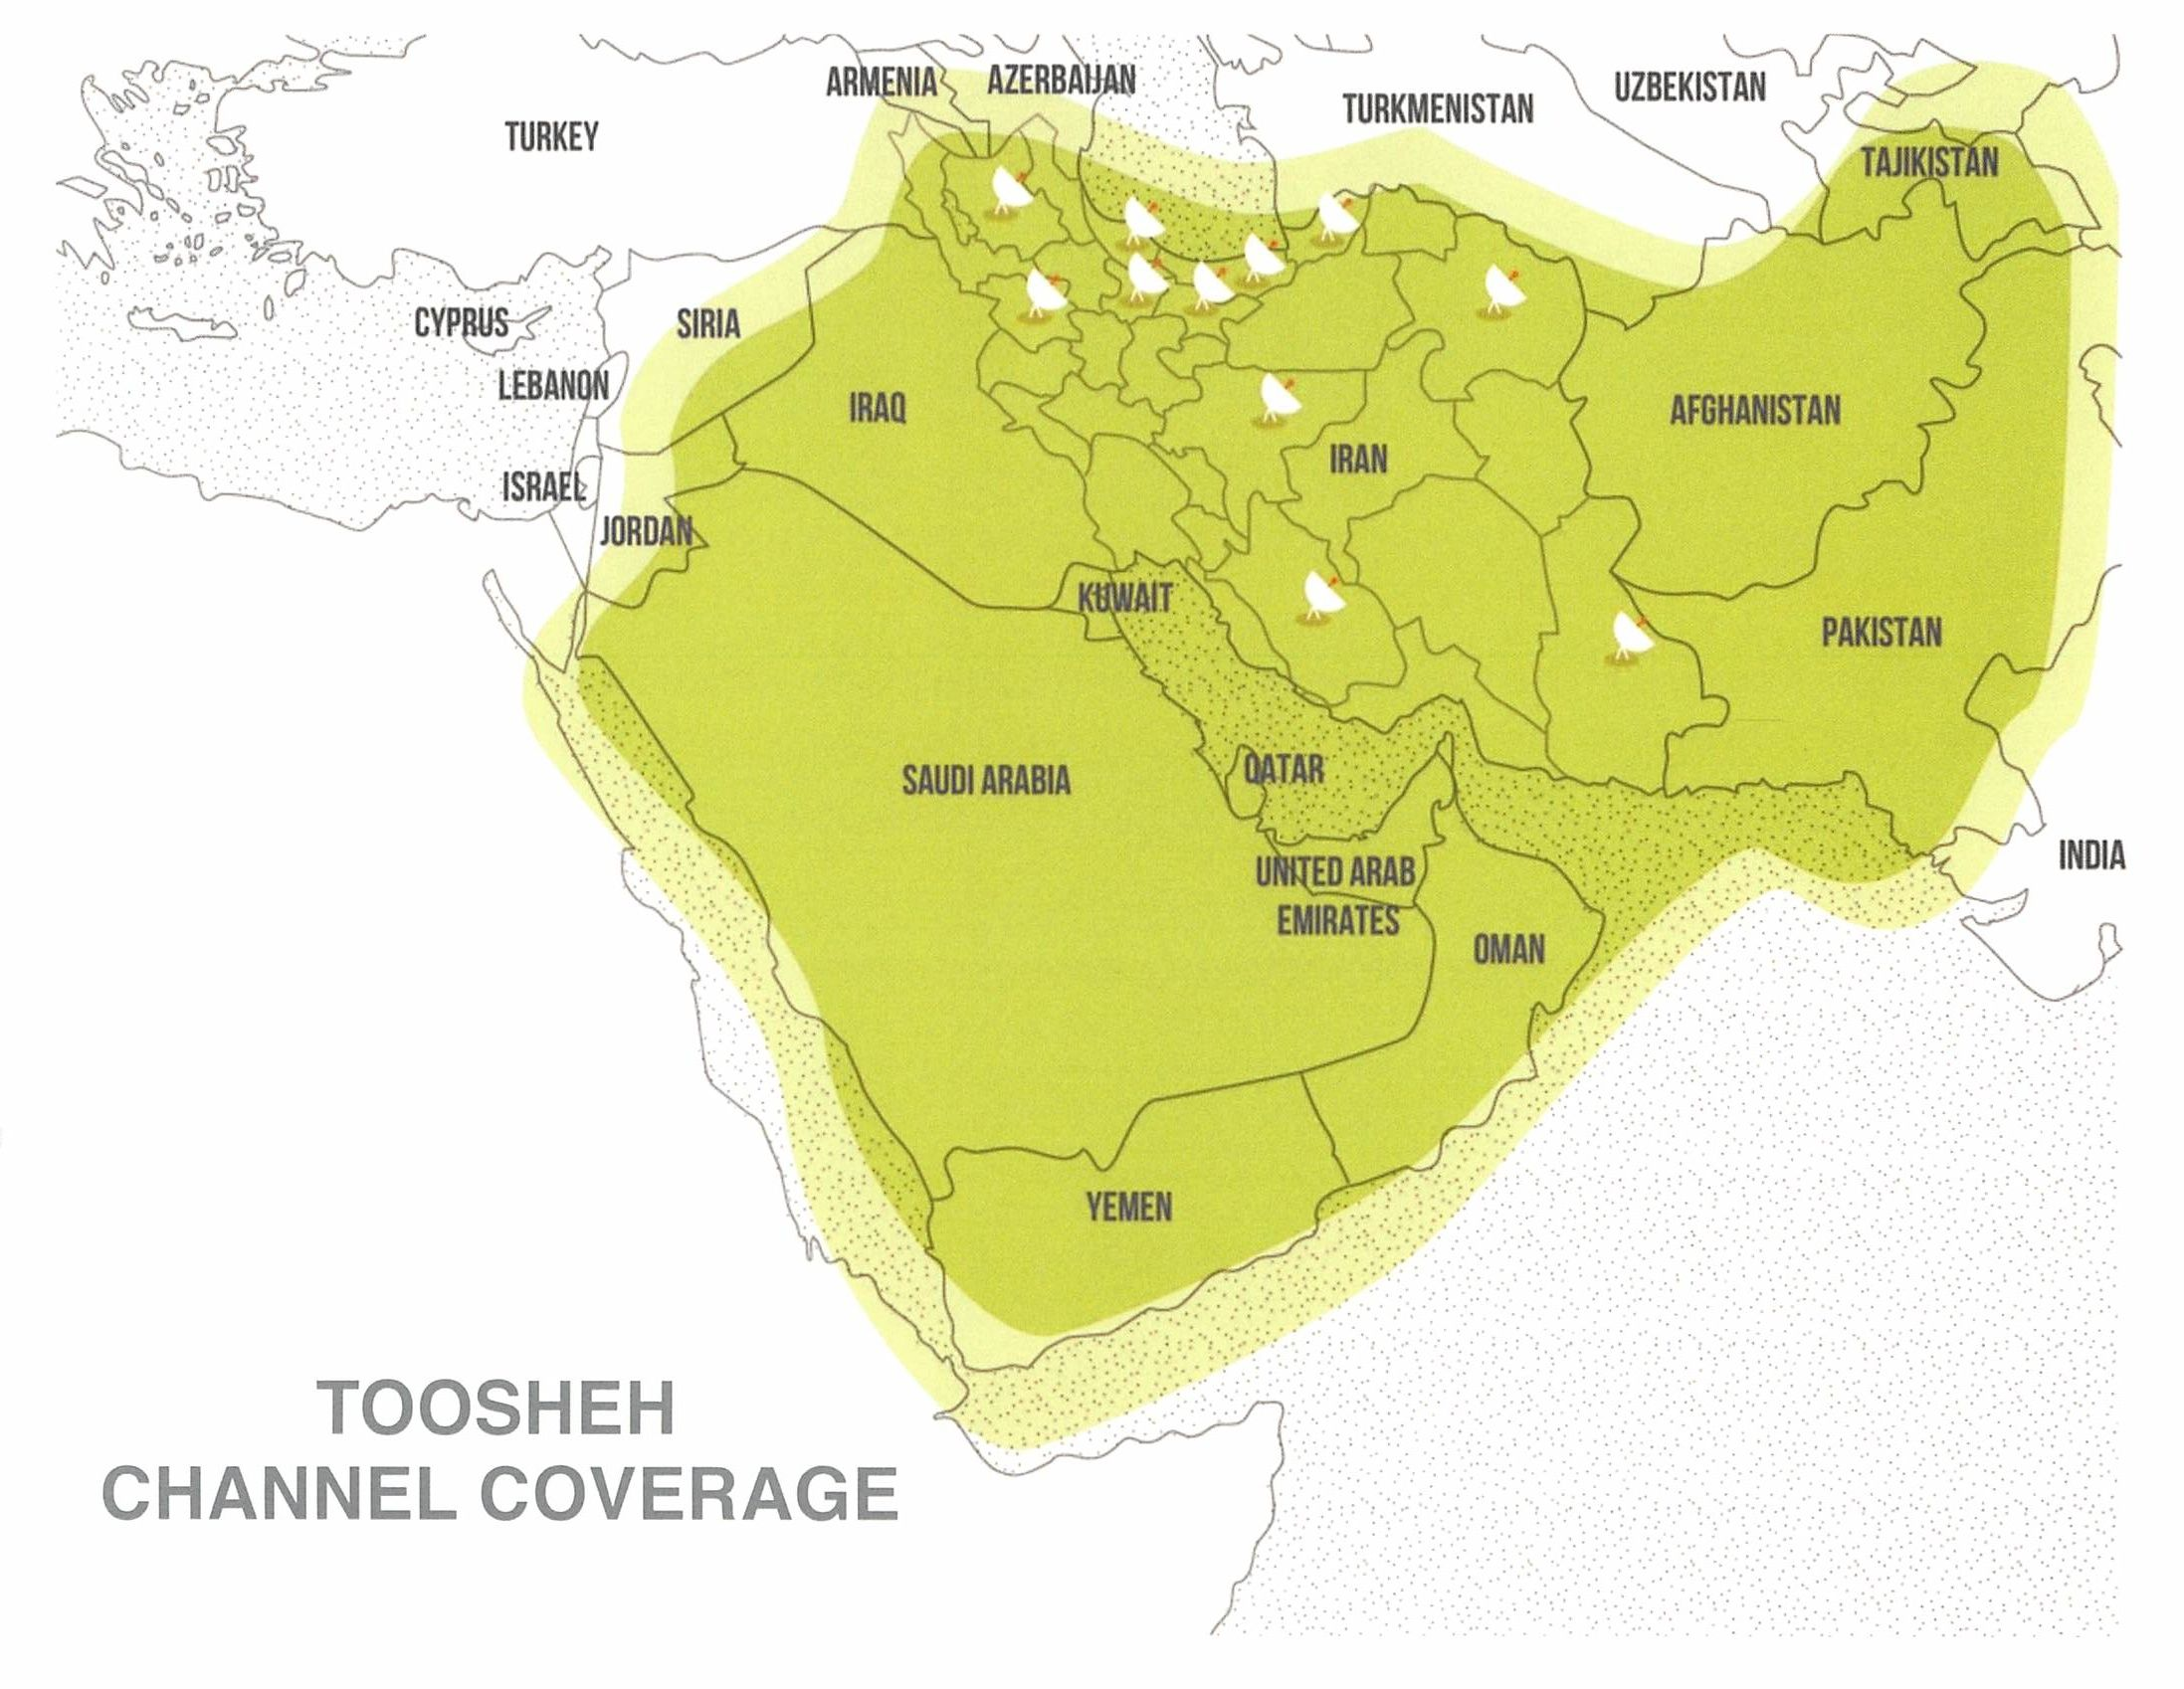 Toosheh Channel covers the majority of the Middle Eastern region.